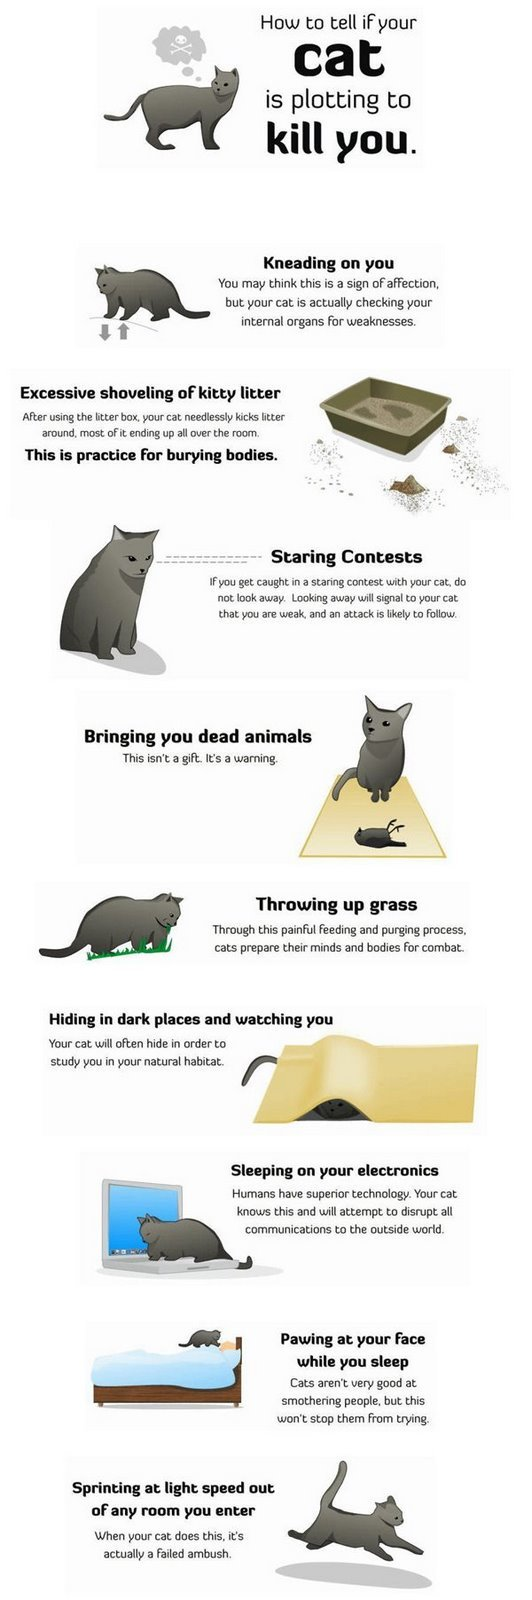 cat - how to tell if your cat is plotting to kill you